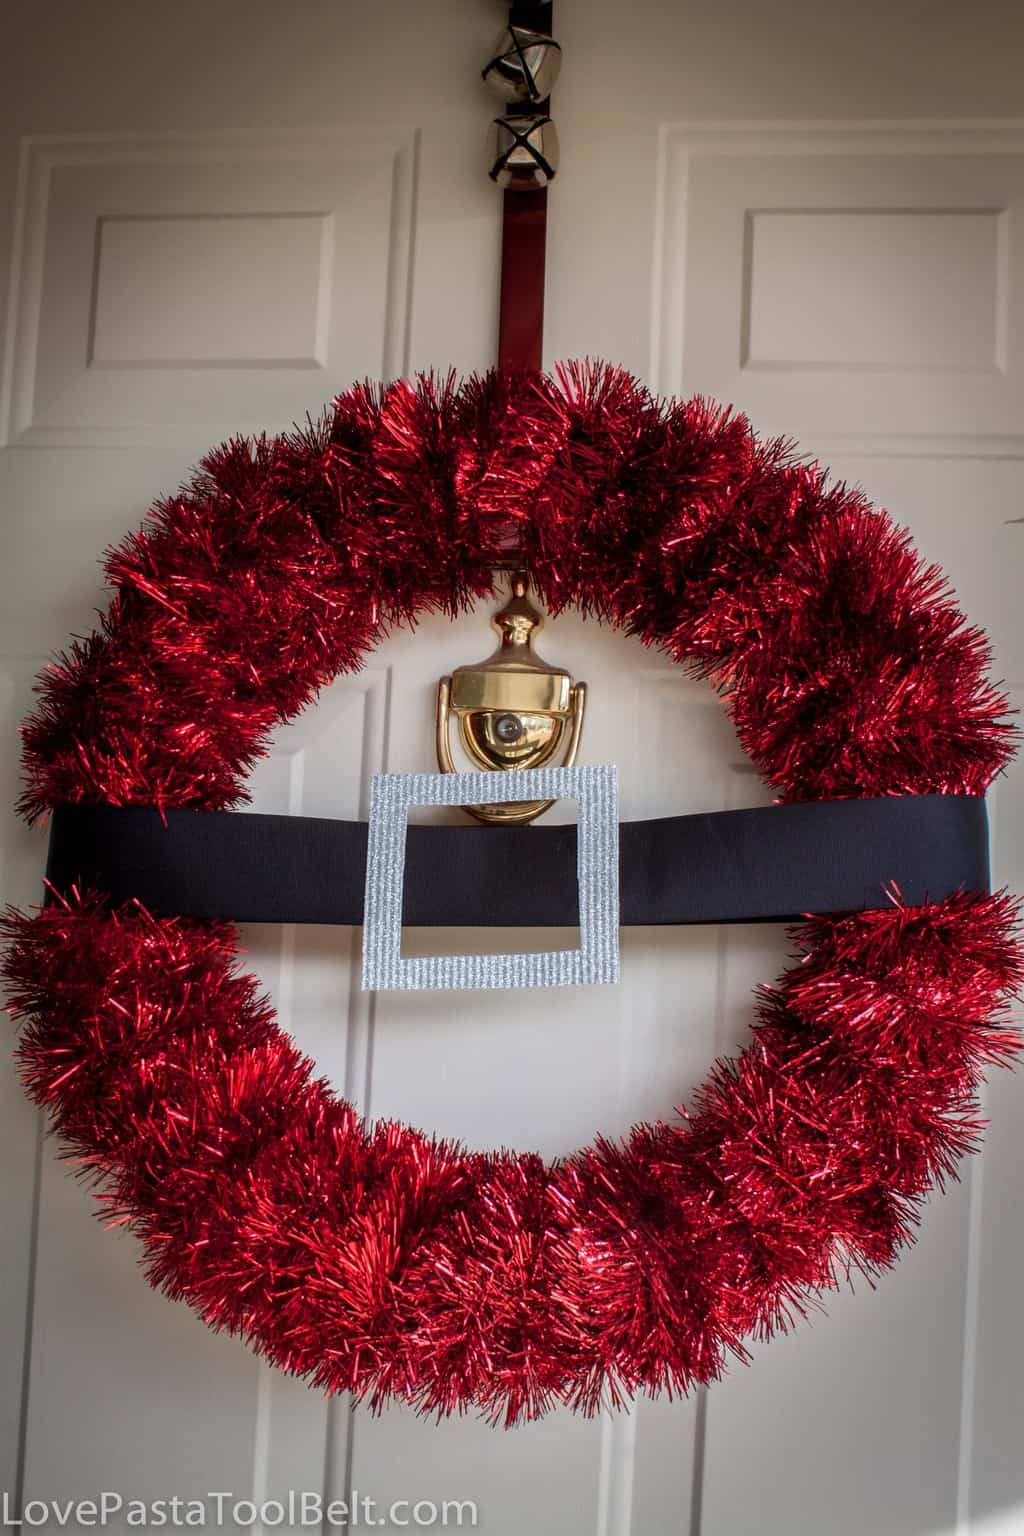 How To Make Wreath At Home